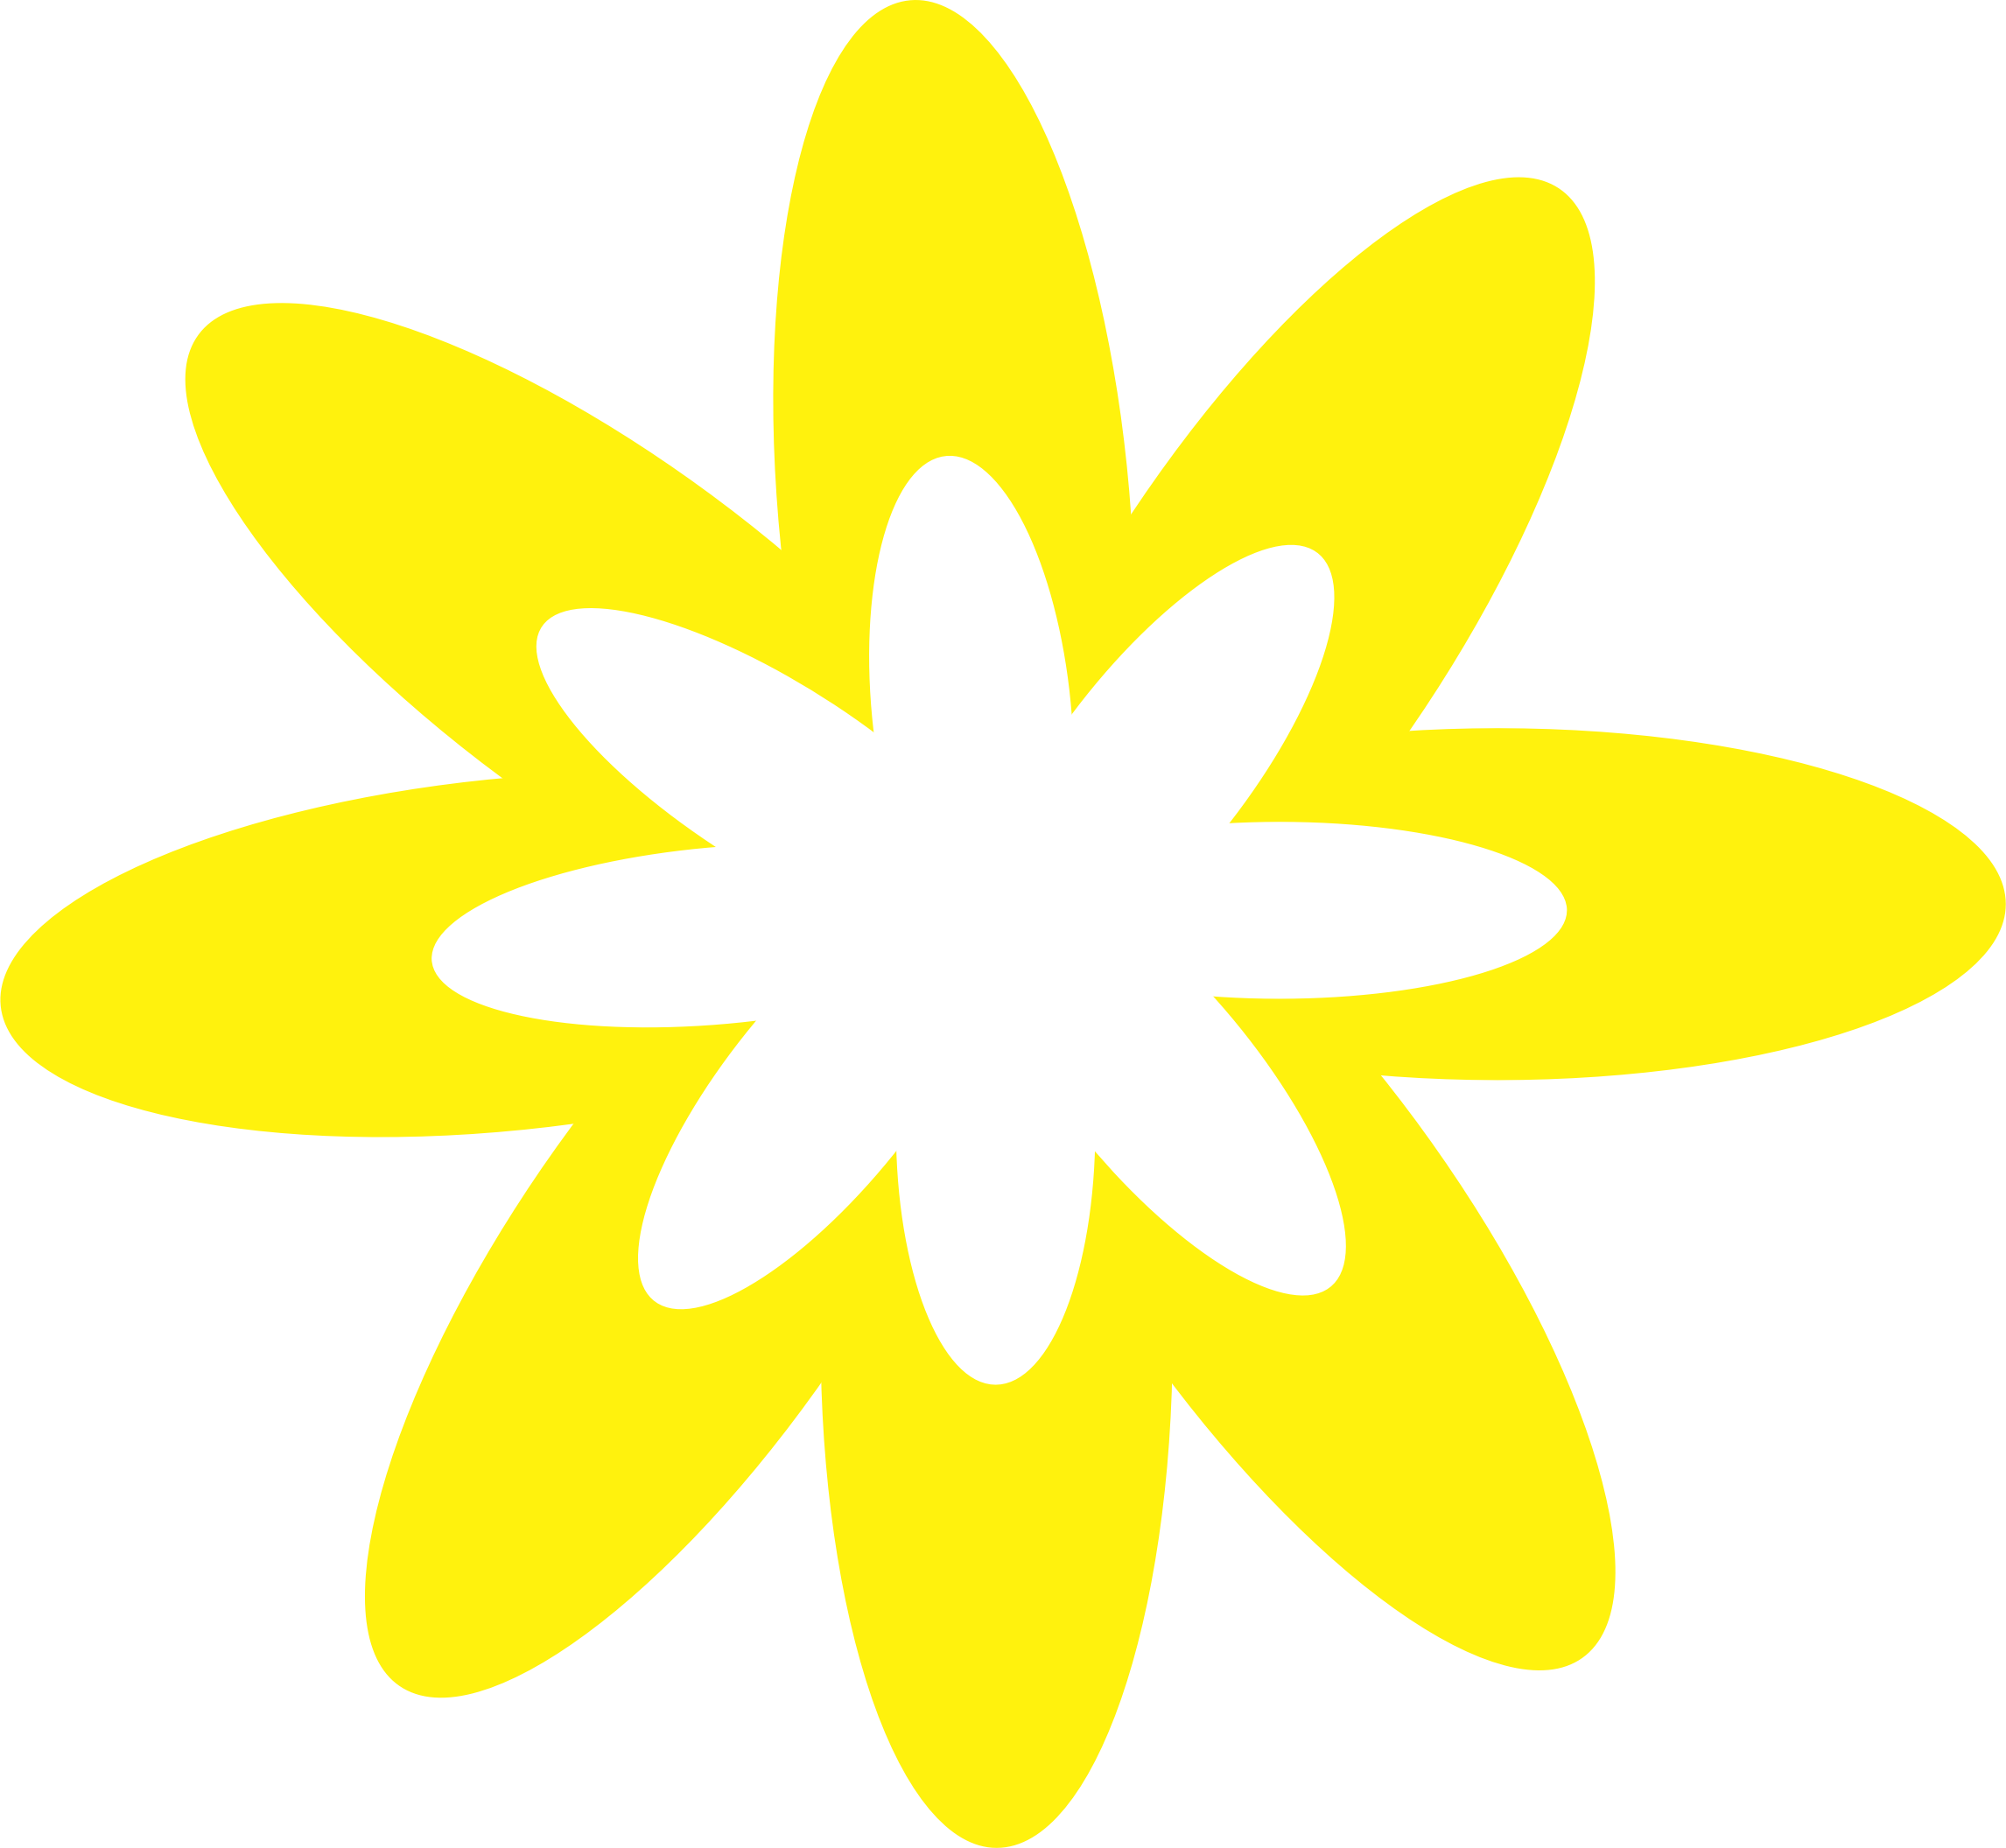 Burst big image png. Clipart flower yellow